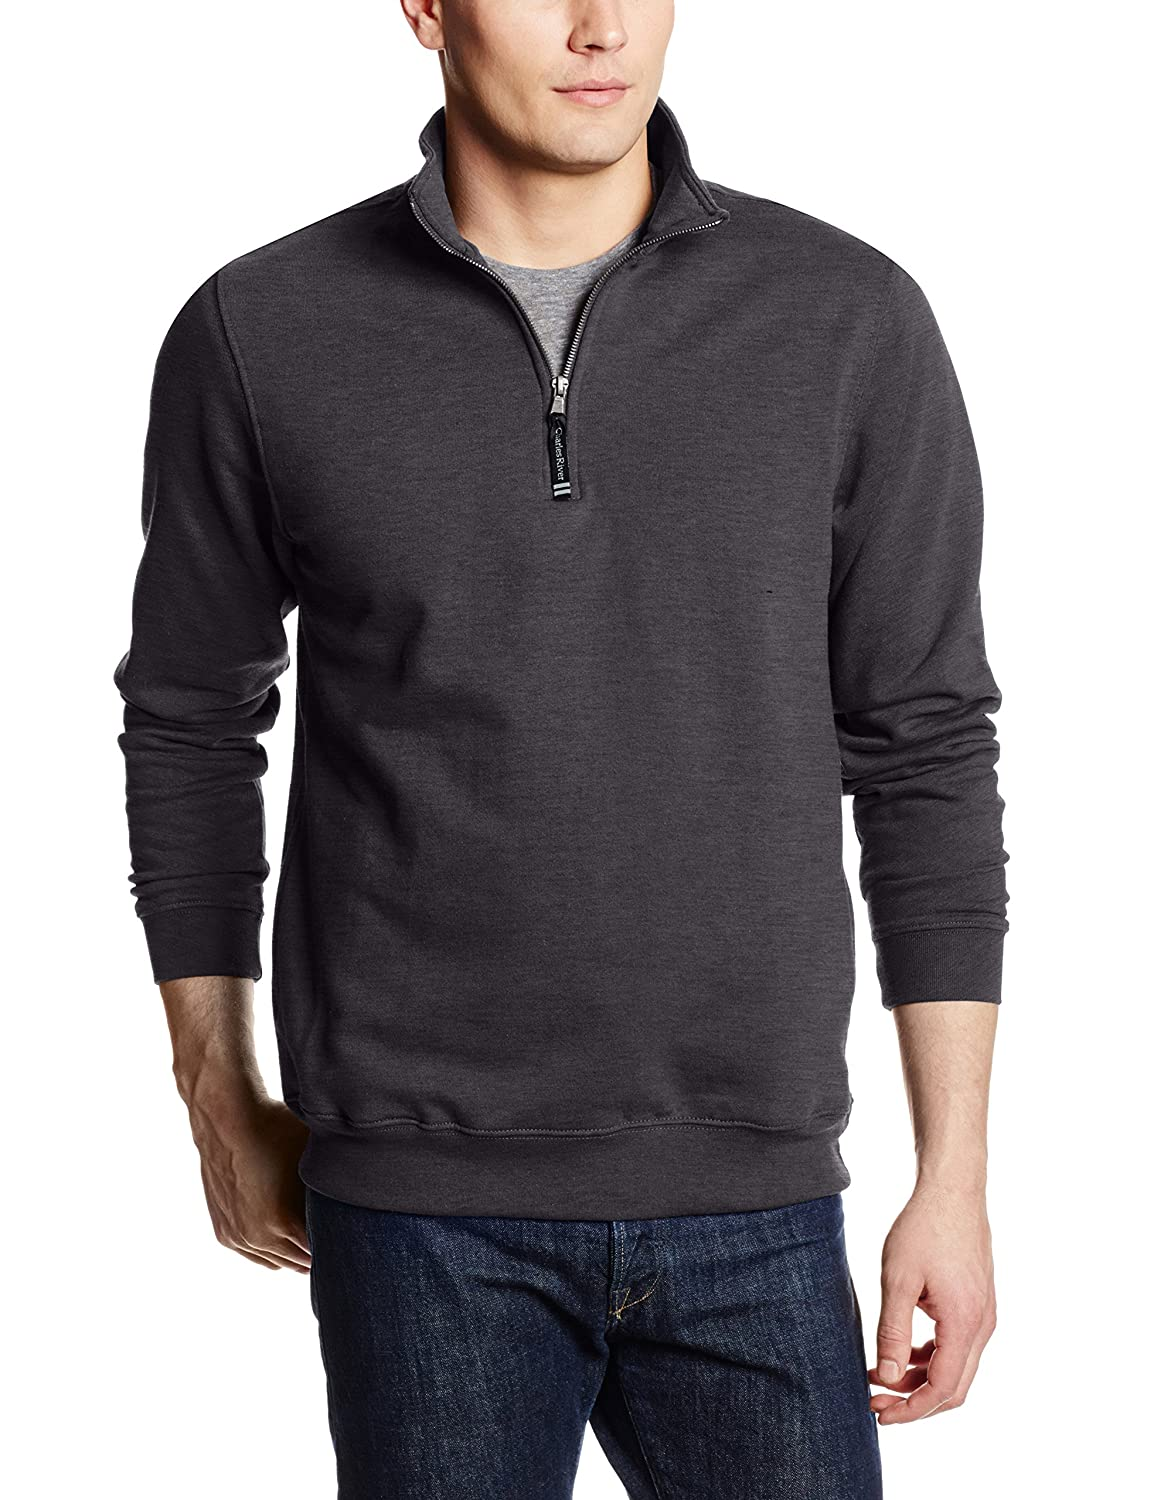 Charles River Apparel Men's Crosswind Quarter Zip Sweatshirt 9359